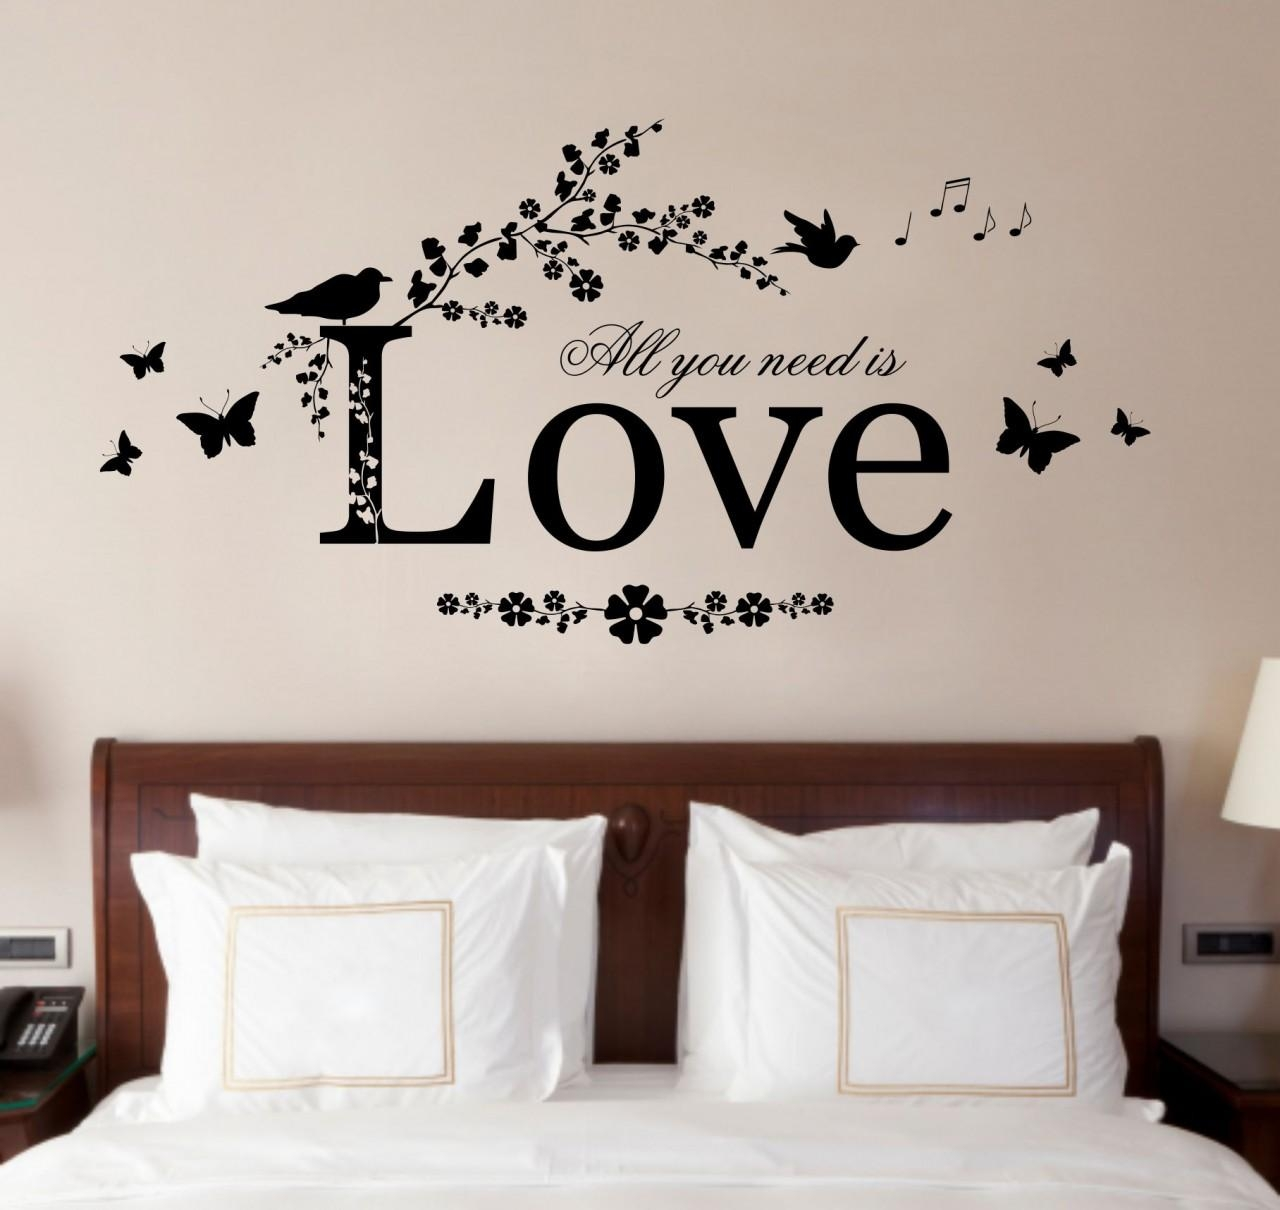 Wall Sticker Art (View 2 of 20)